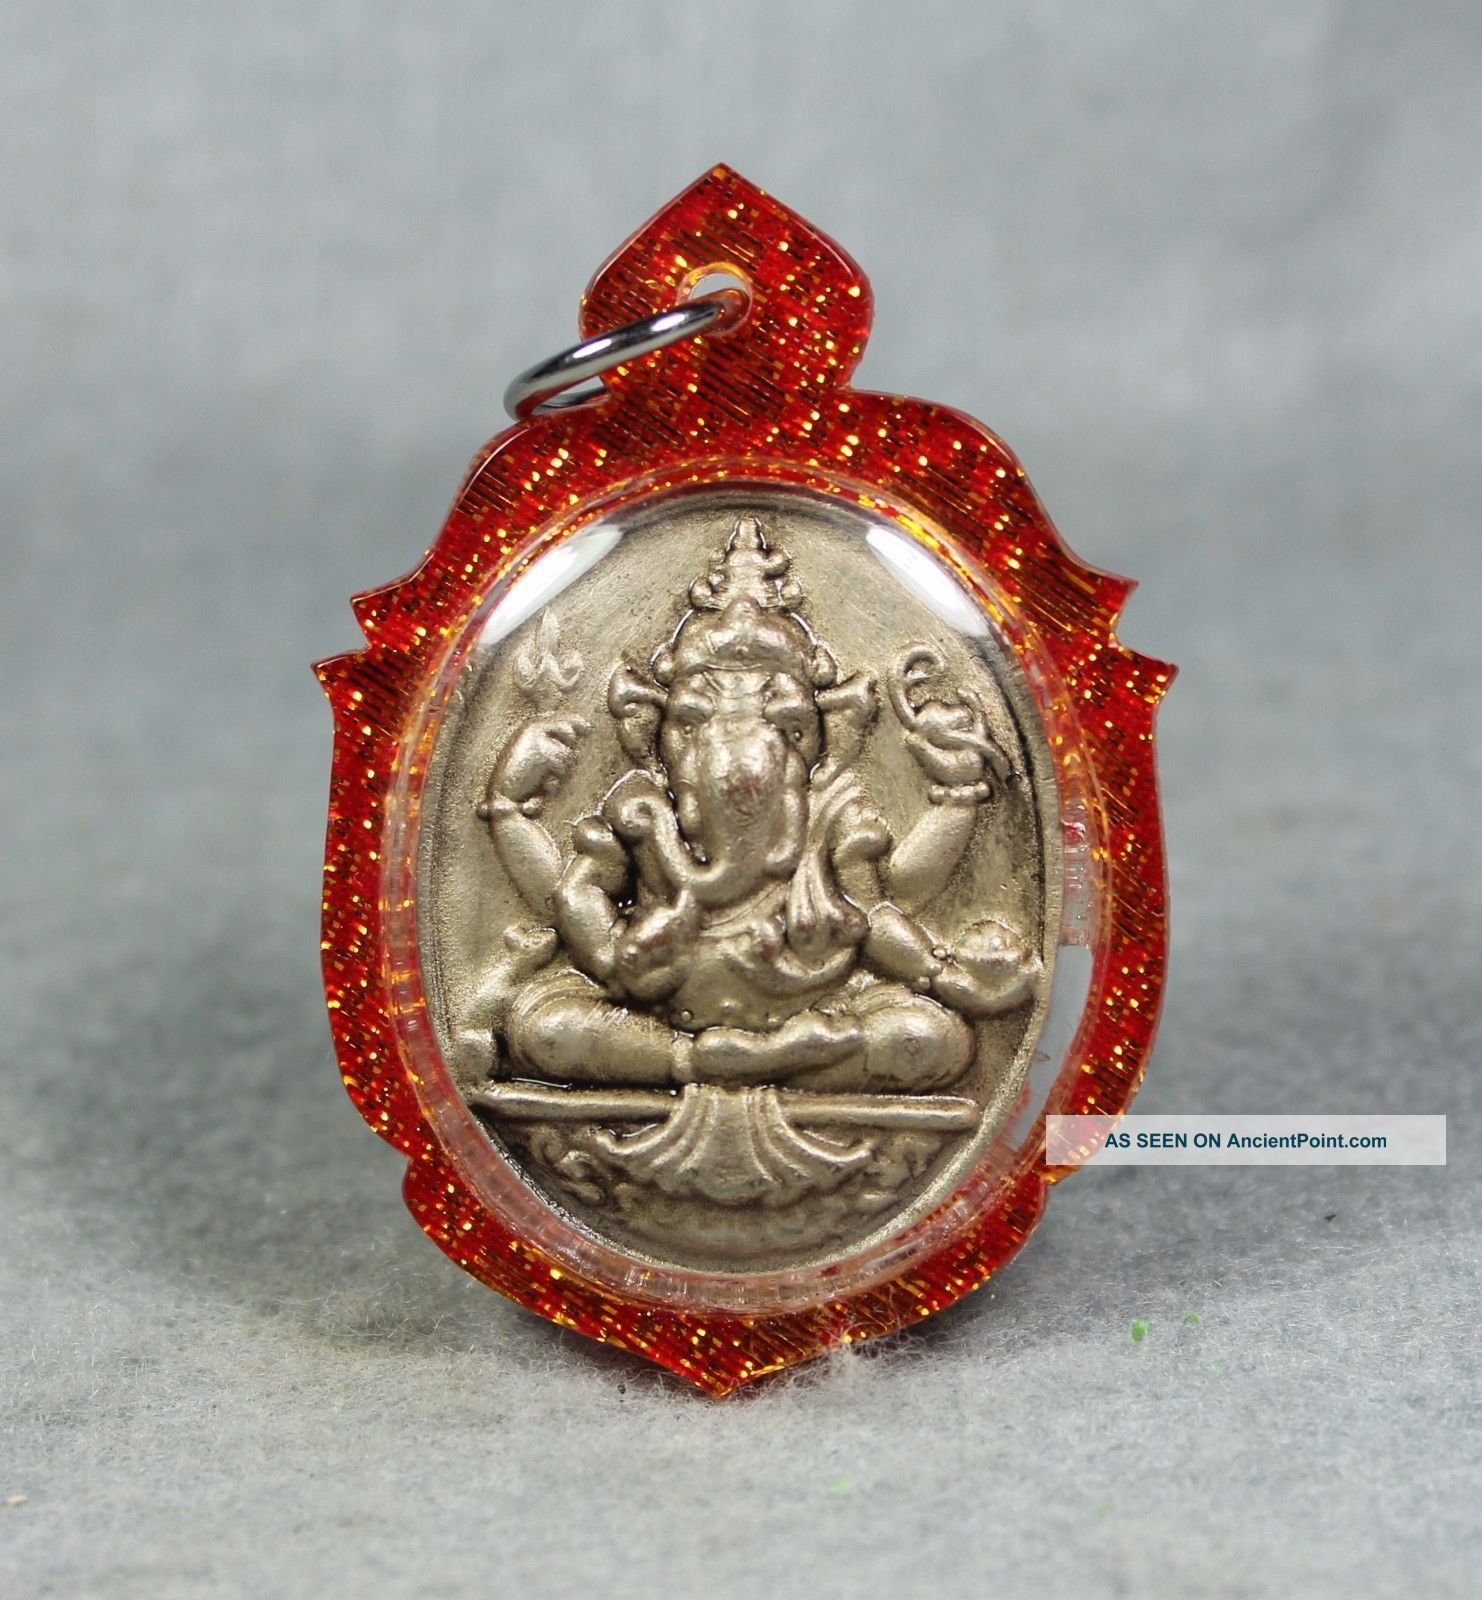 Pendant V.  Mahalap Ganesha Deity Of Lucky Success Elephant Thai Amulet Buddha 2 Amulets photo